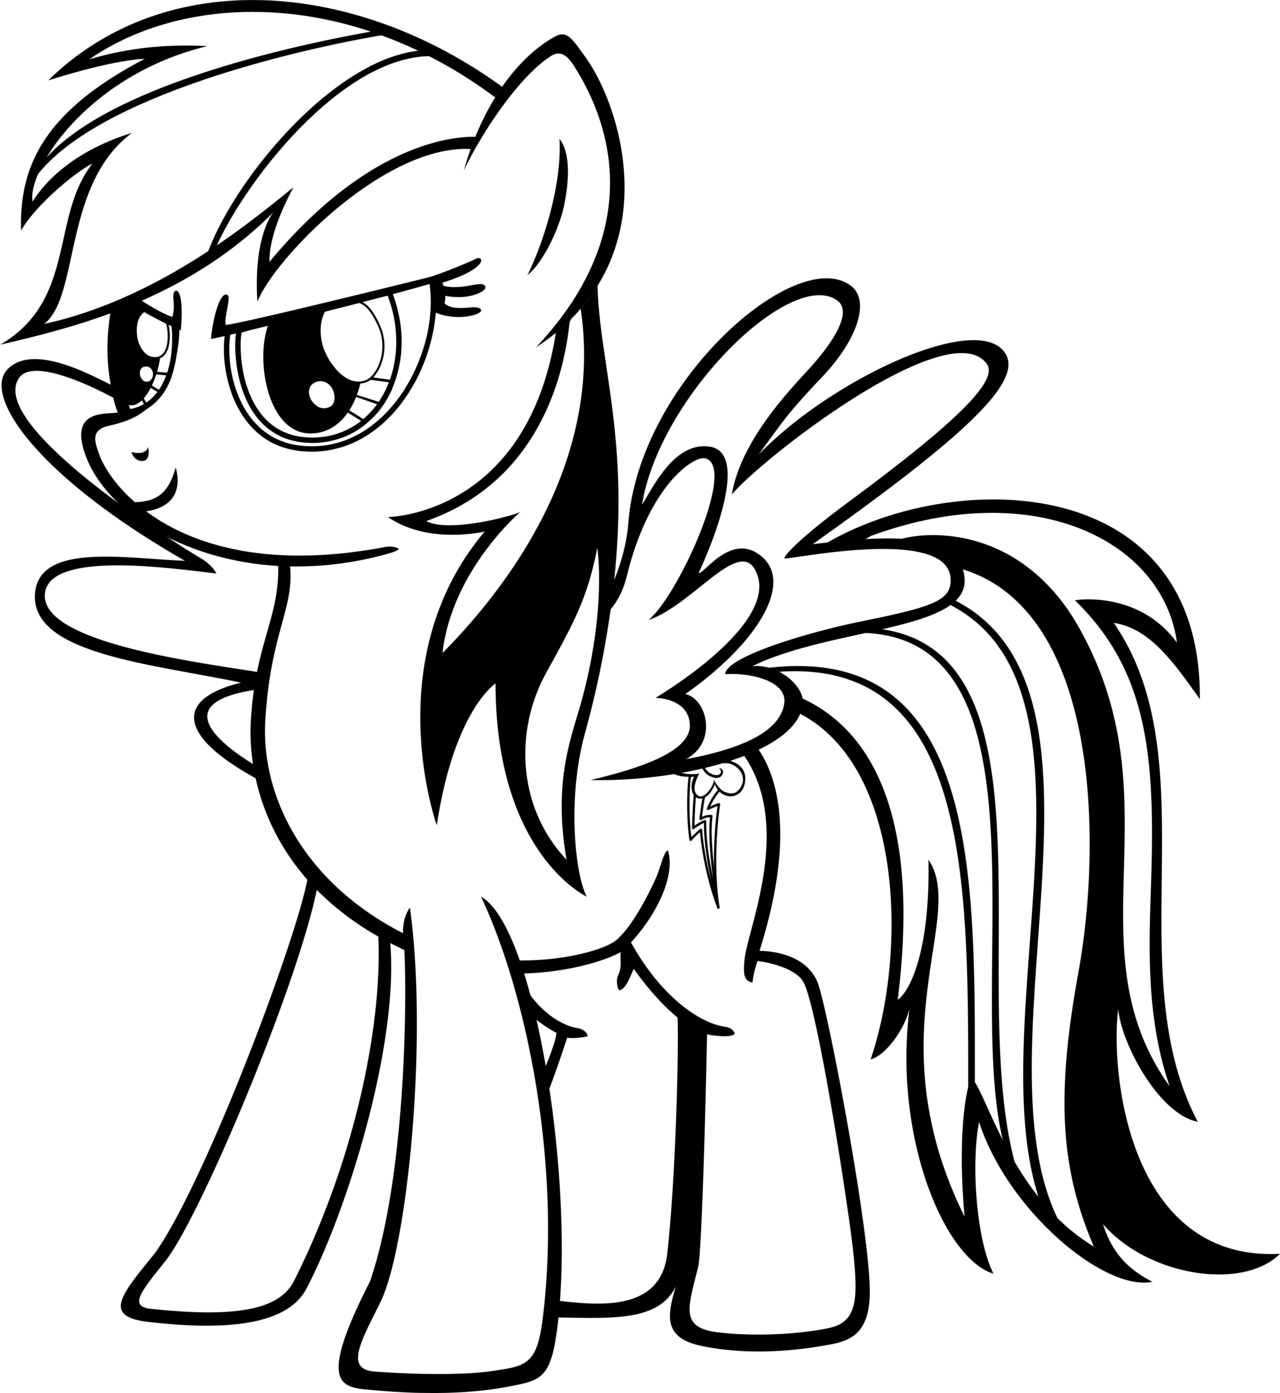 Rainbow dash coloring pages best coloring pages for kids for Best coloring pages for kids